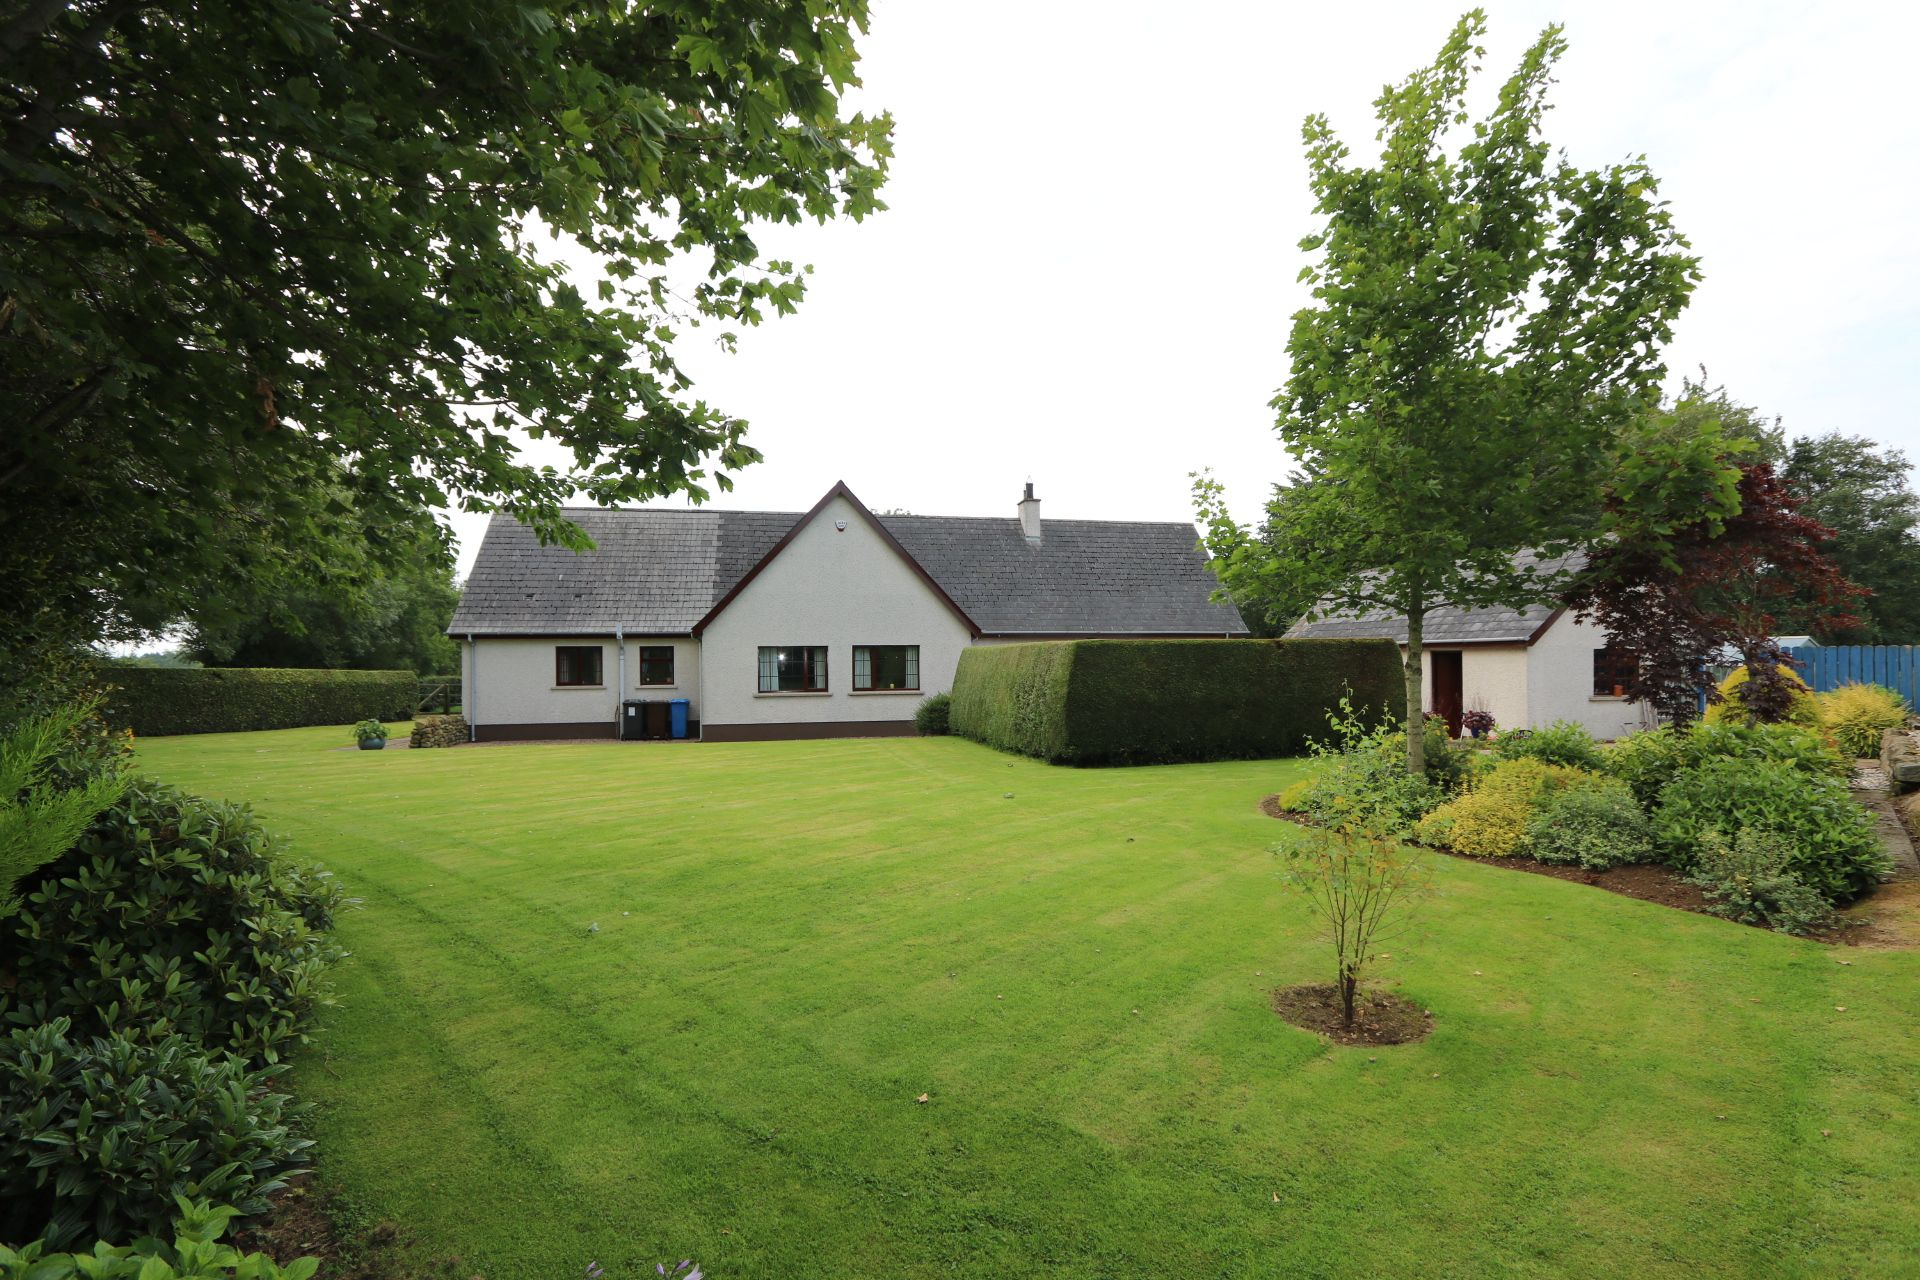 4 bedroom detached bungalow Under Offer in Antrim - Photograph 2